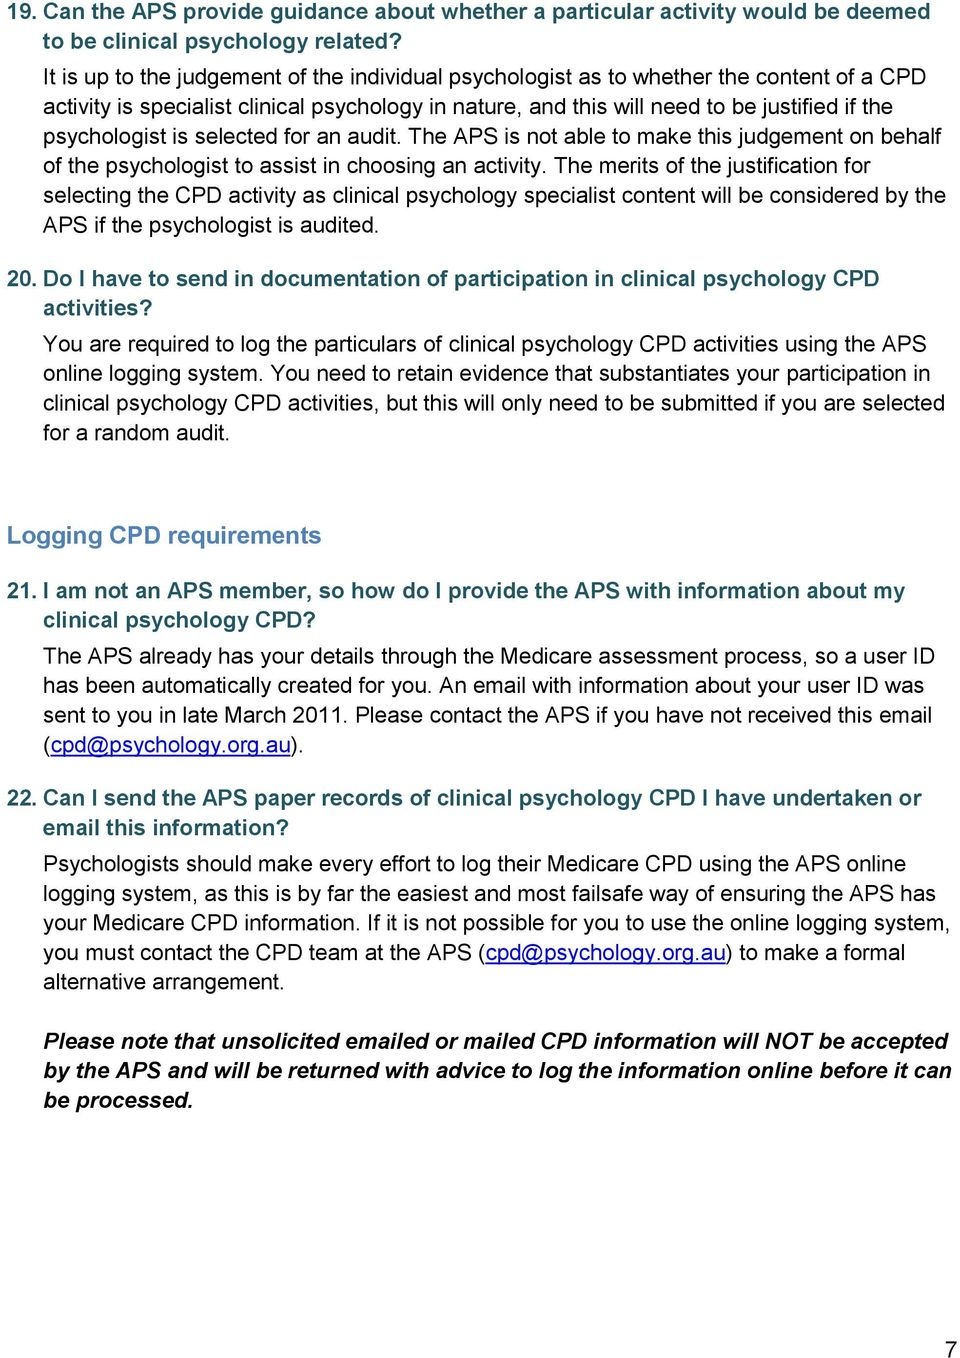 psychologist is selected for an audit. The APS is not able to make this judgement on behalf of the psychologist to assist in choosing an activity.